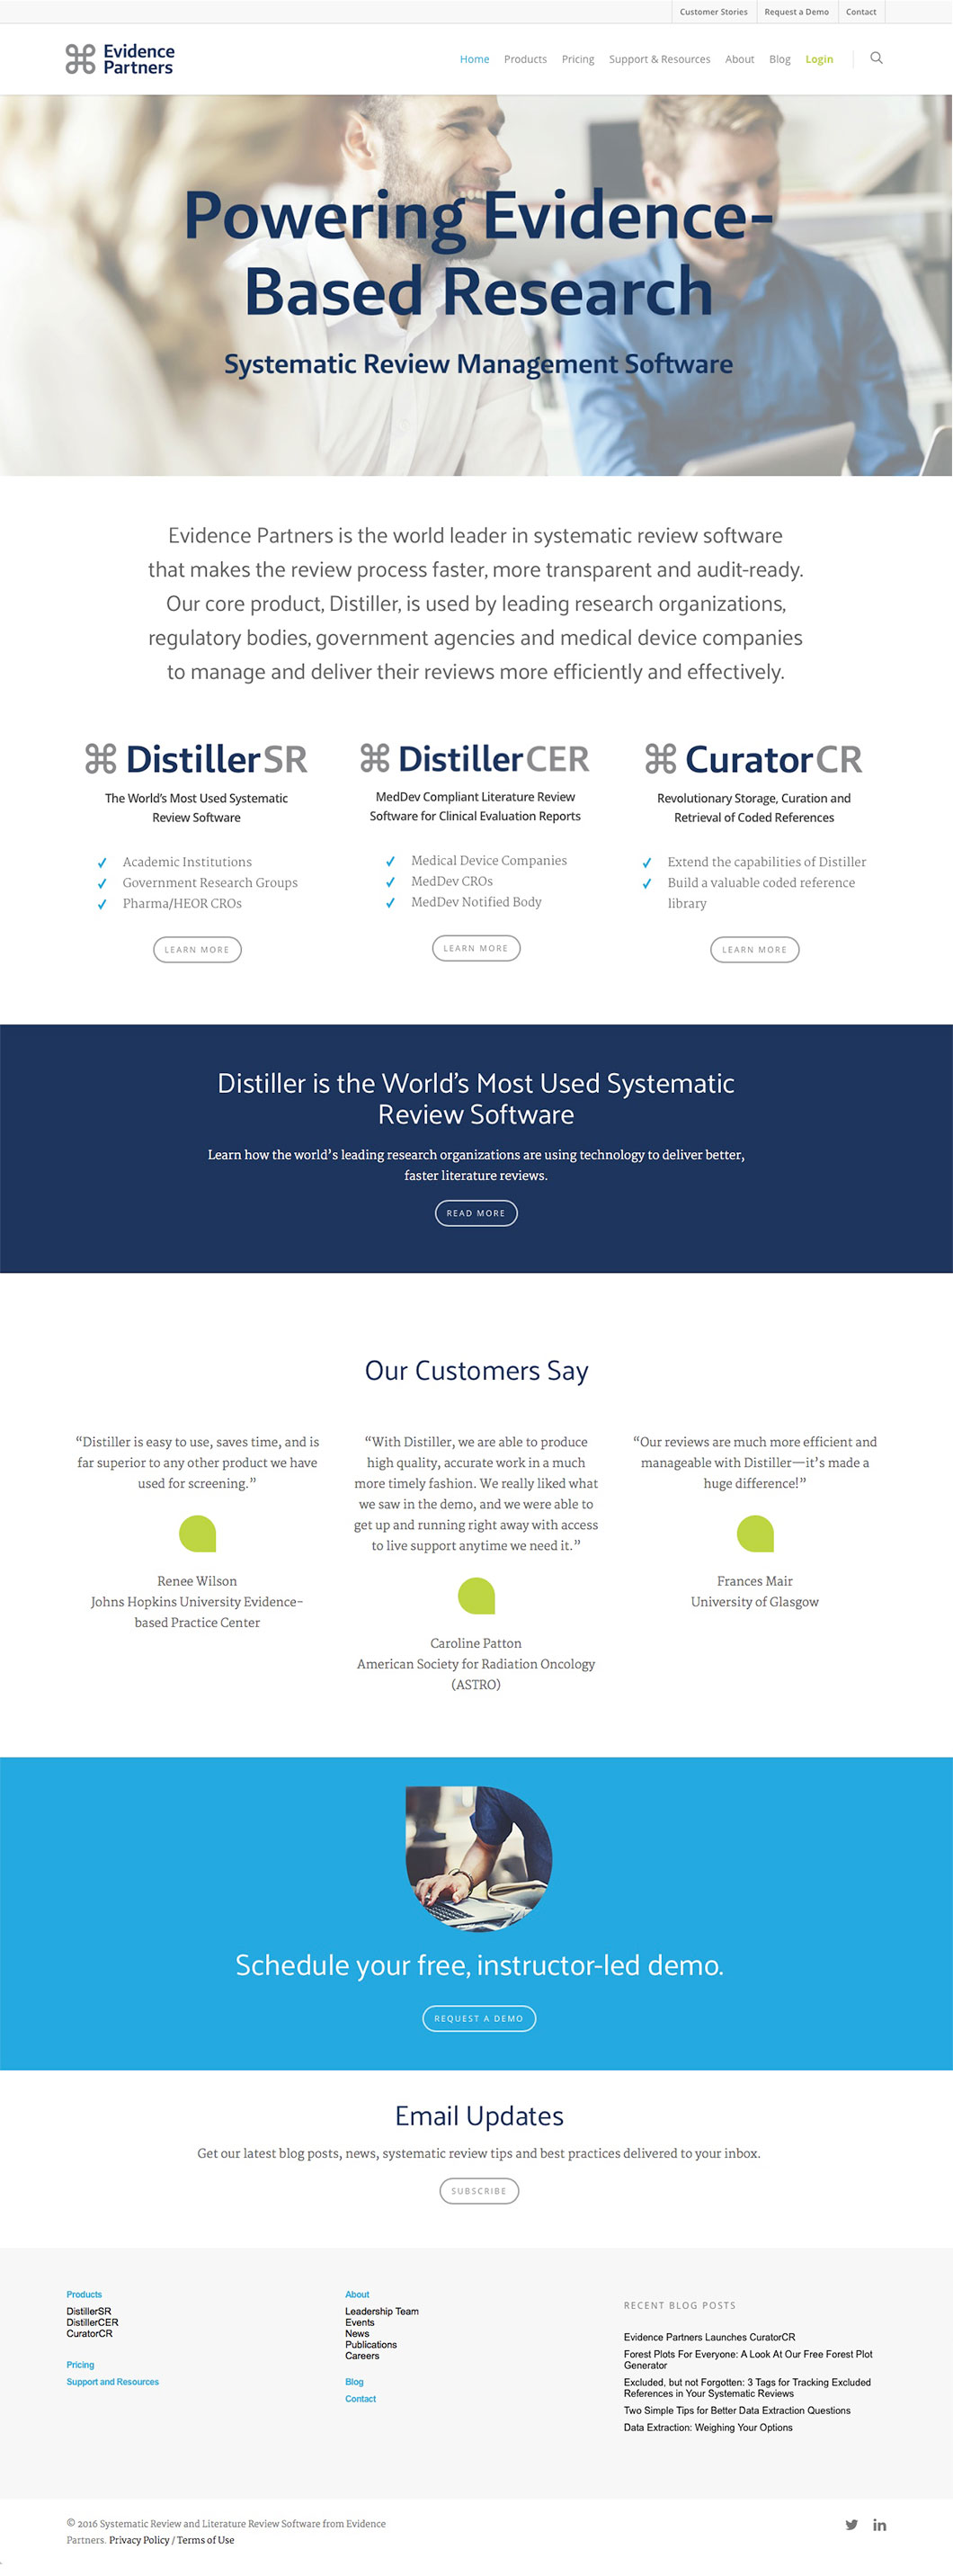 Software developer Evidence Partners website by Ottawa graphic designer idApostle